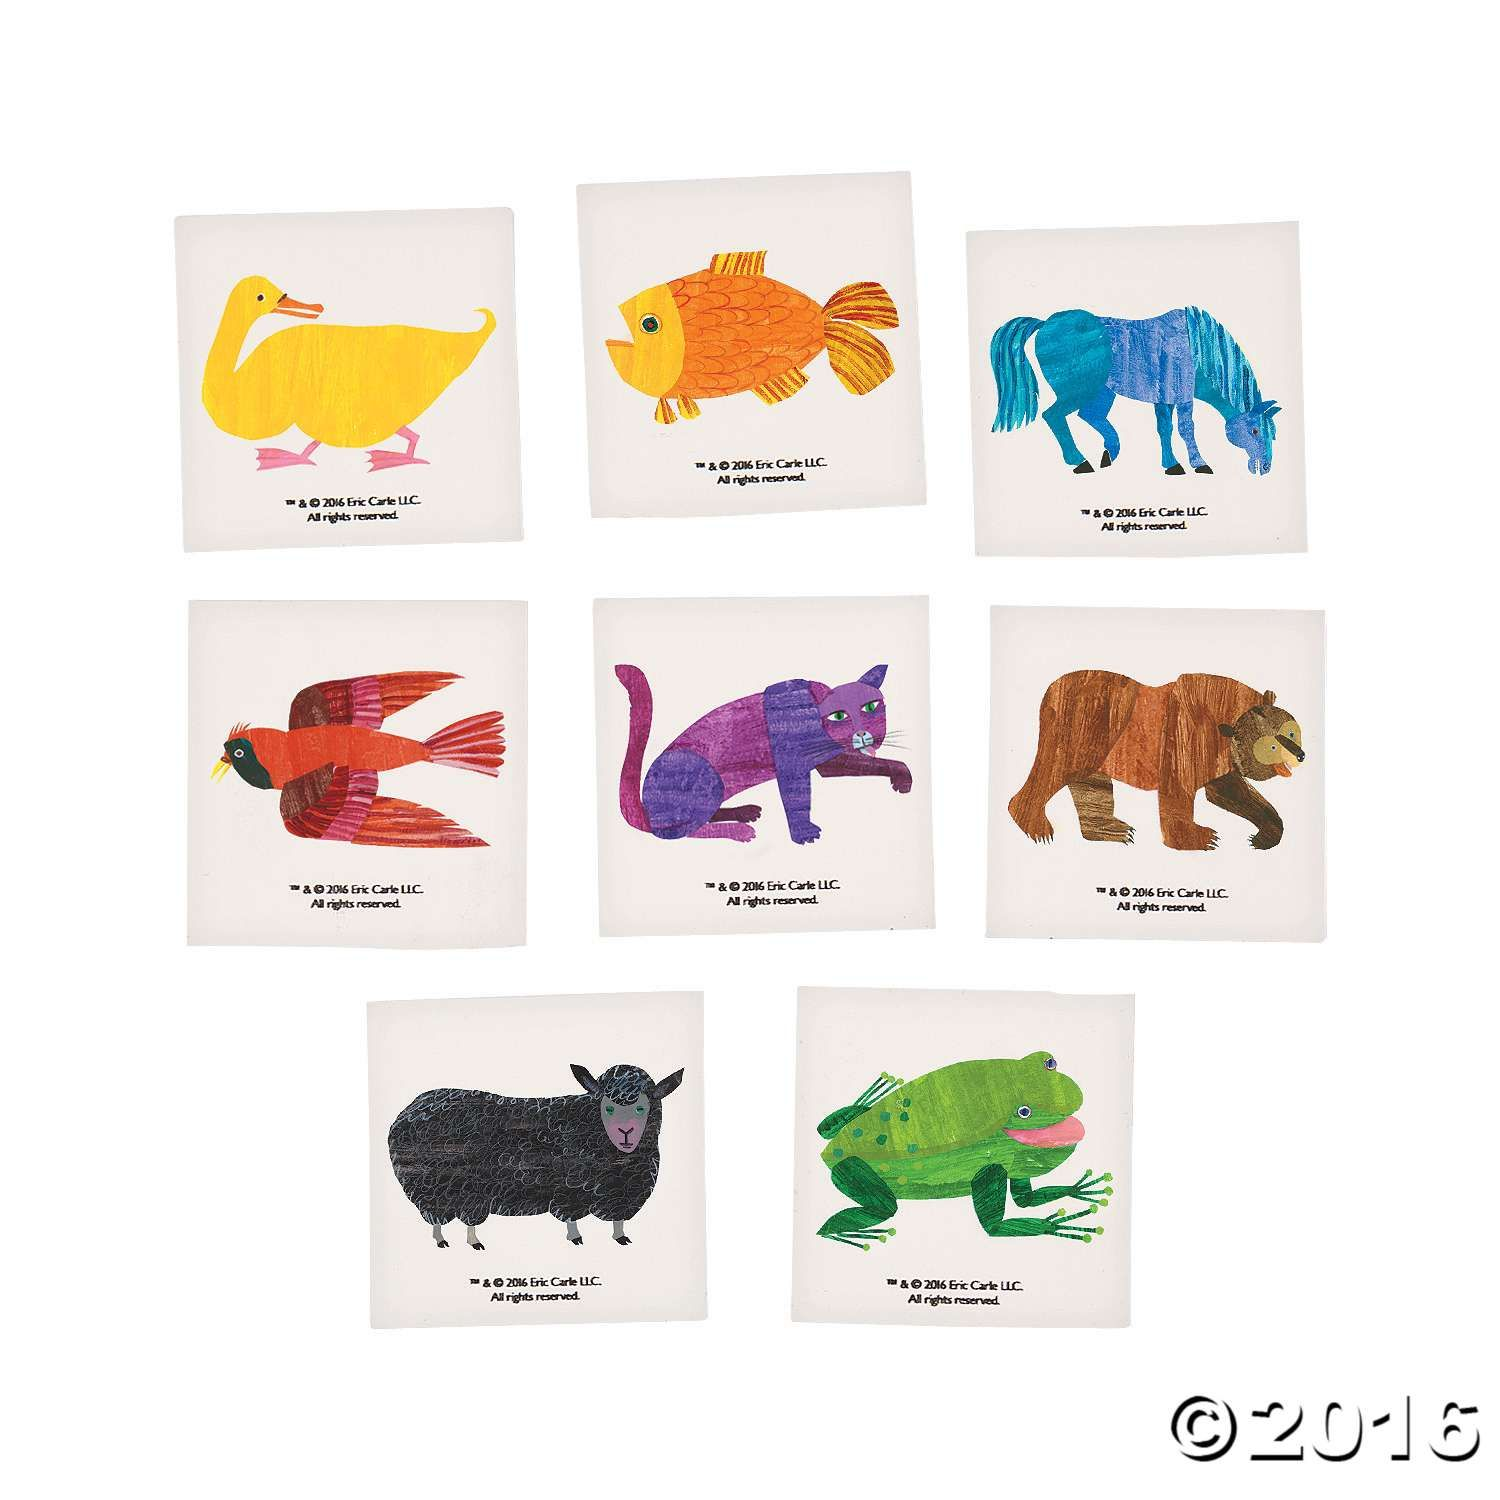 Brown Bear, Brown Bear, what do you see? Do you see temporary tattoos featuring your favorite colorful characters from Eric Carle's Brown Bear book? These ...